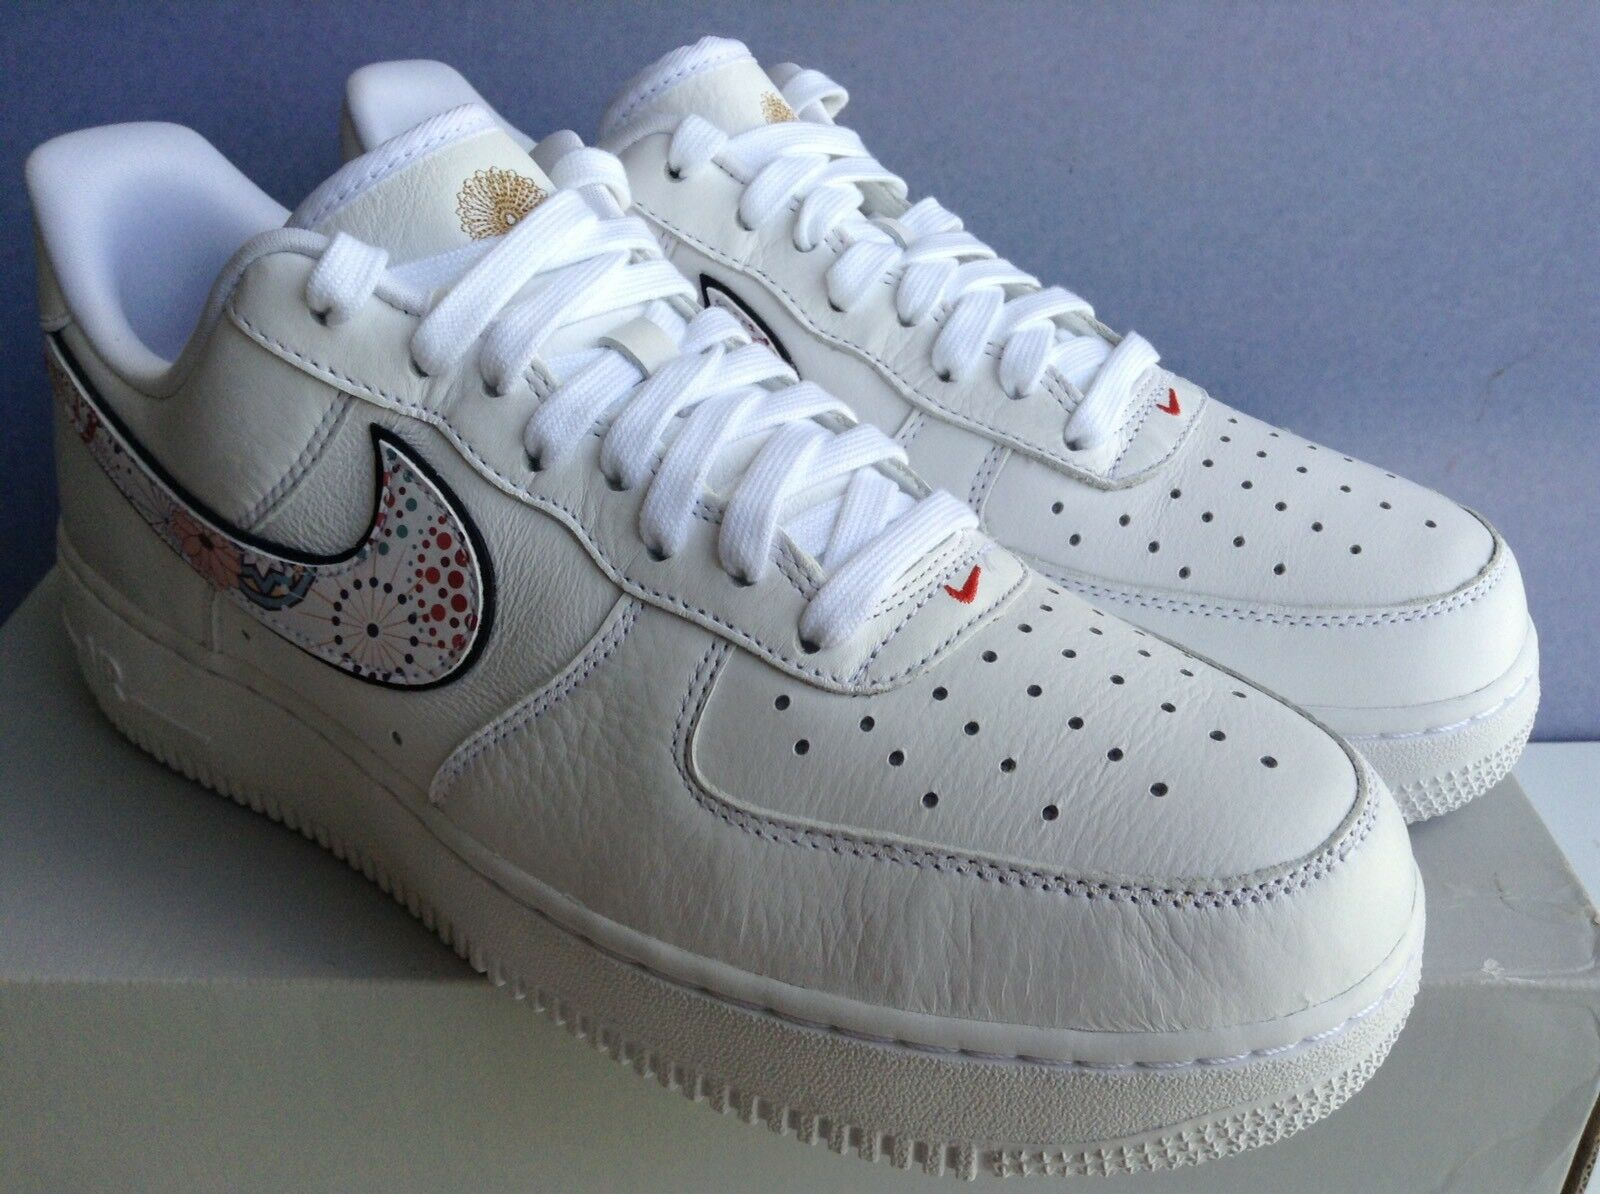 Nike air qs force 1 '07 lny qs air white-habanero rosso mns.sz.14 (ao9381-100) 78d4f5